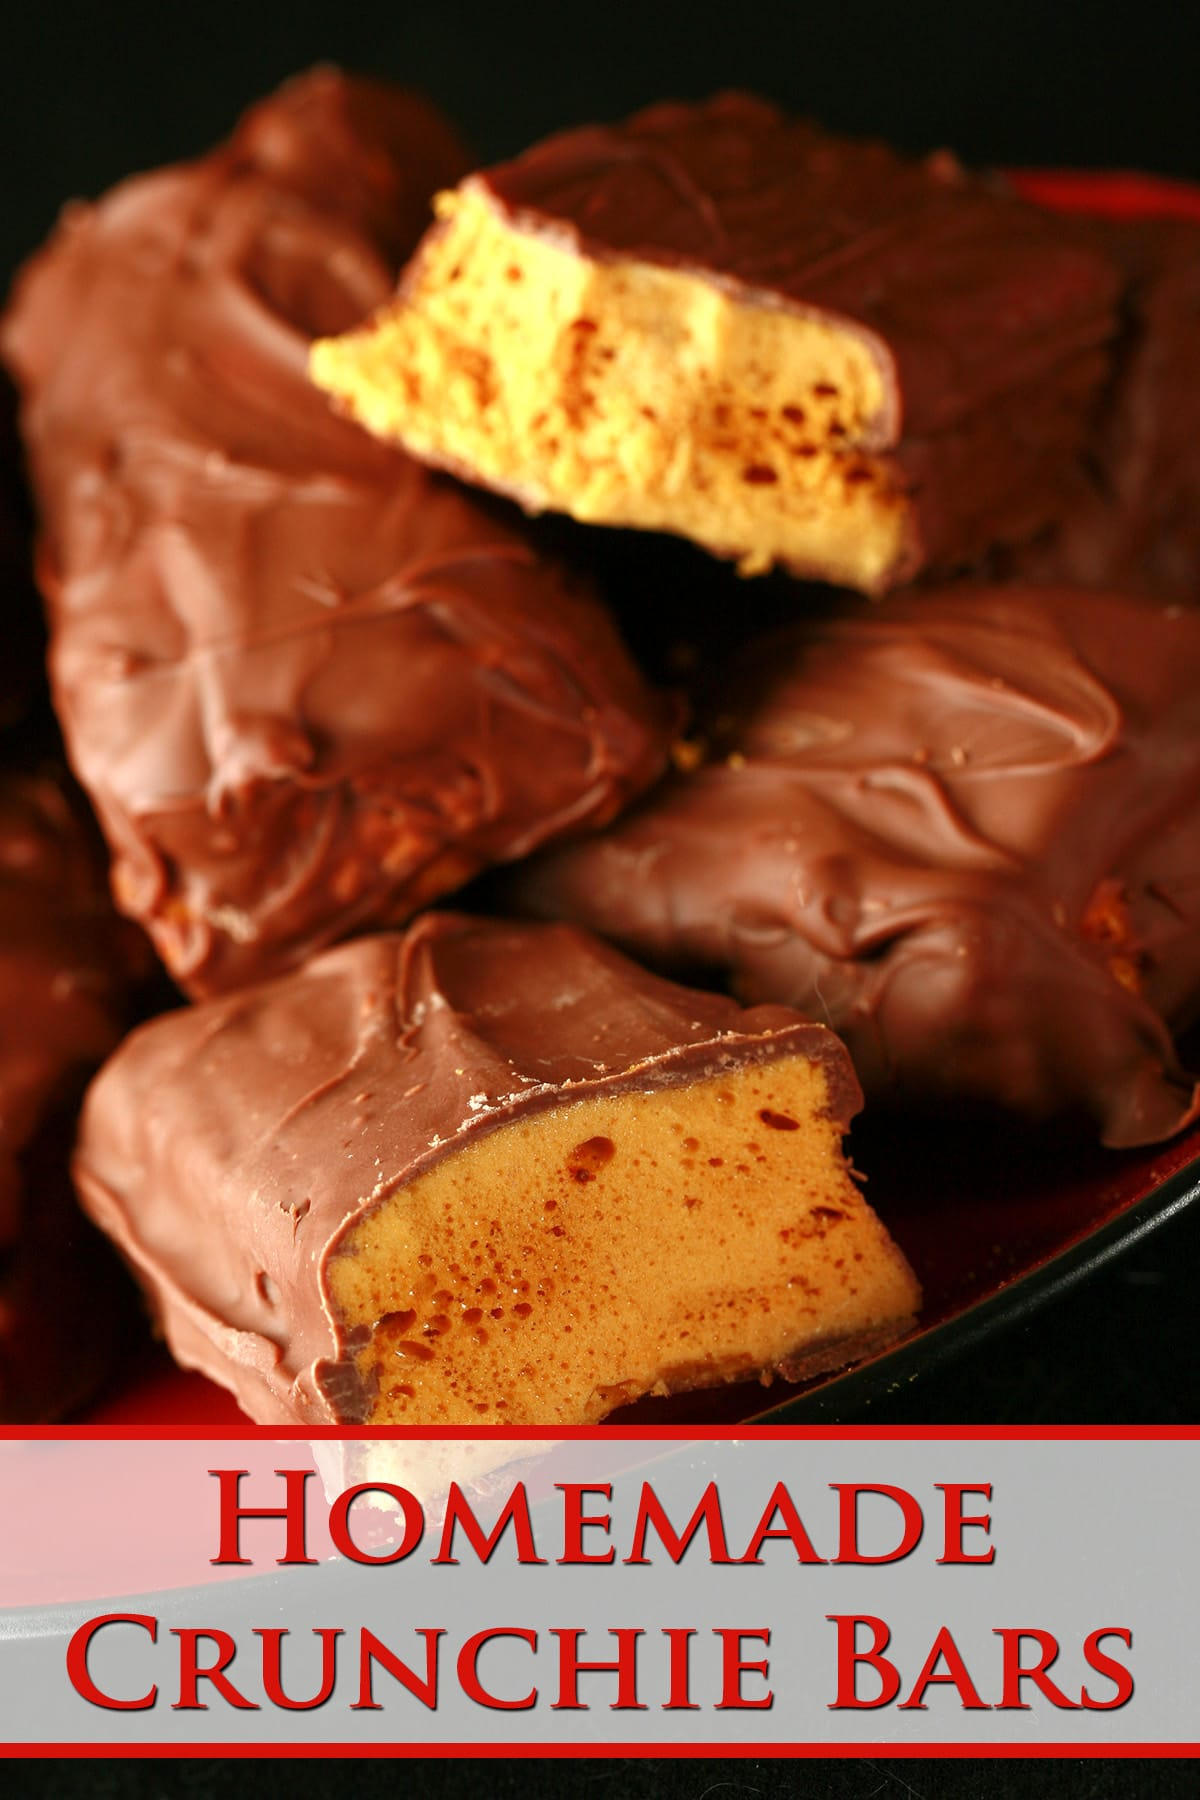 A small red plate is piled high with homemade crunchie bars. One is broken in half to reveal the honeycomb toffee inside.